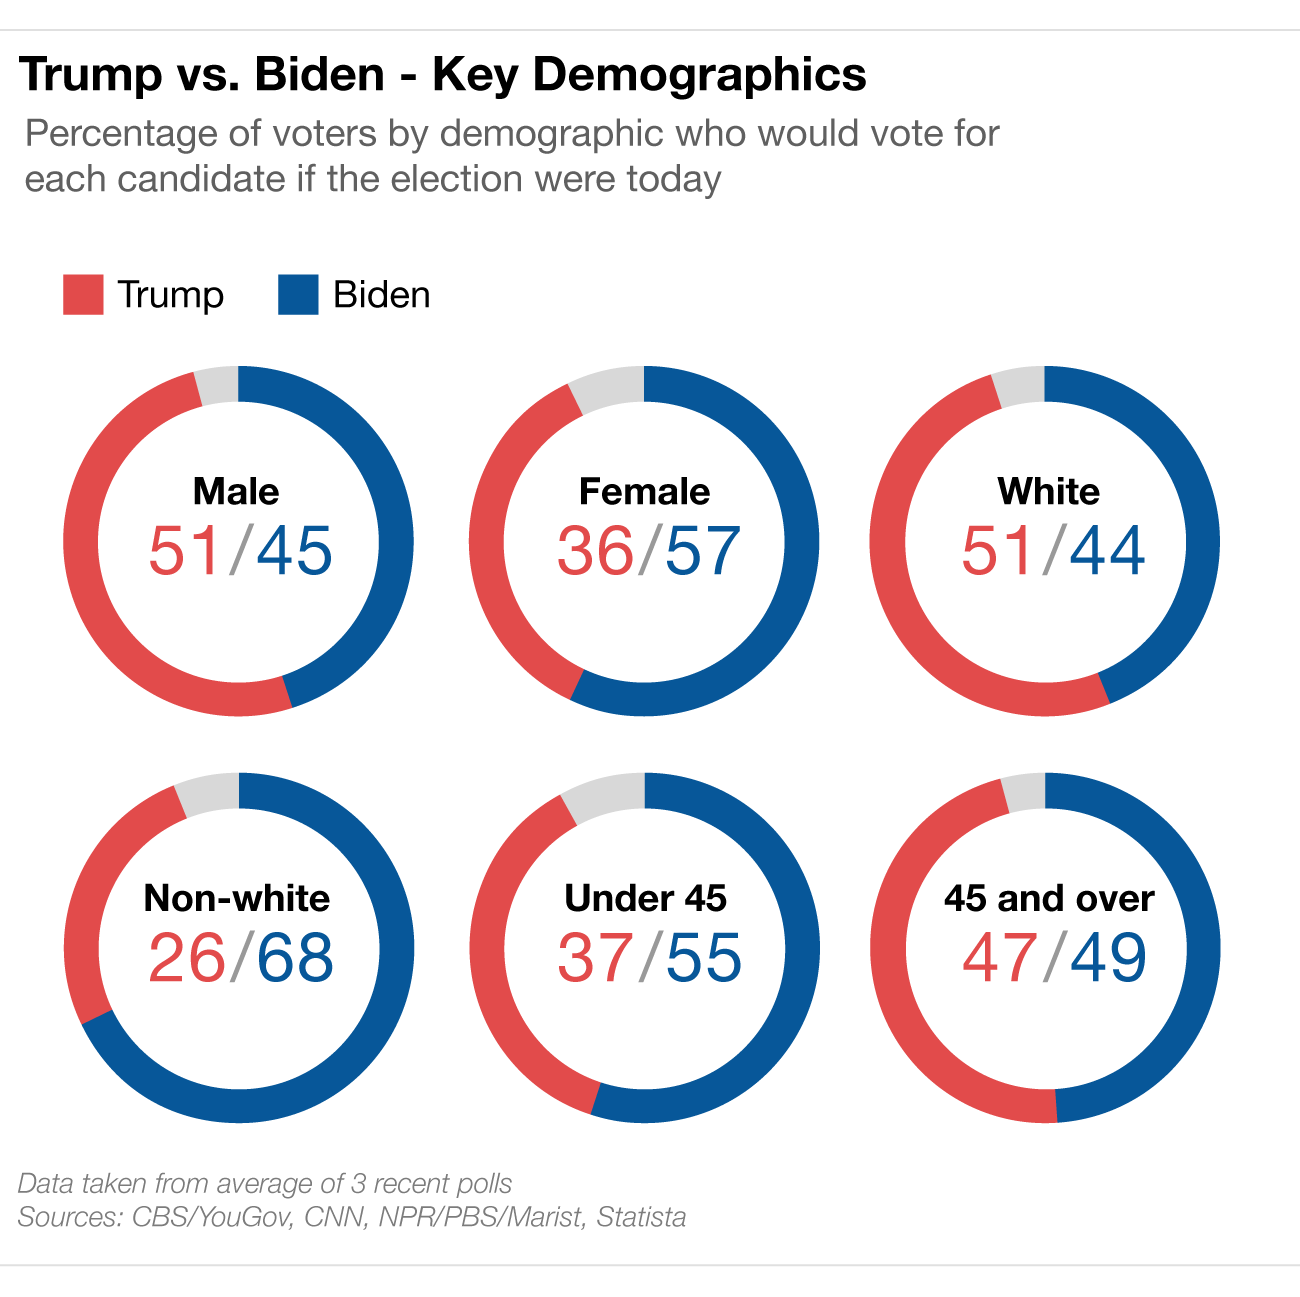 NED-2563-Trump-vs-Biden-Key-Demographics - 0